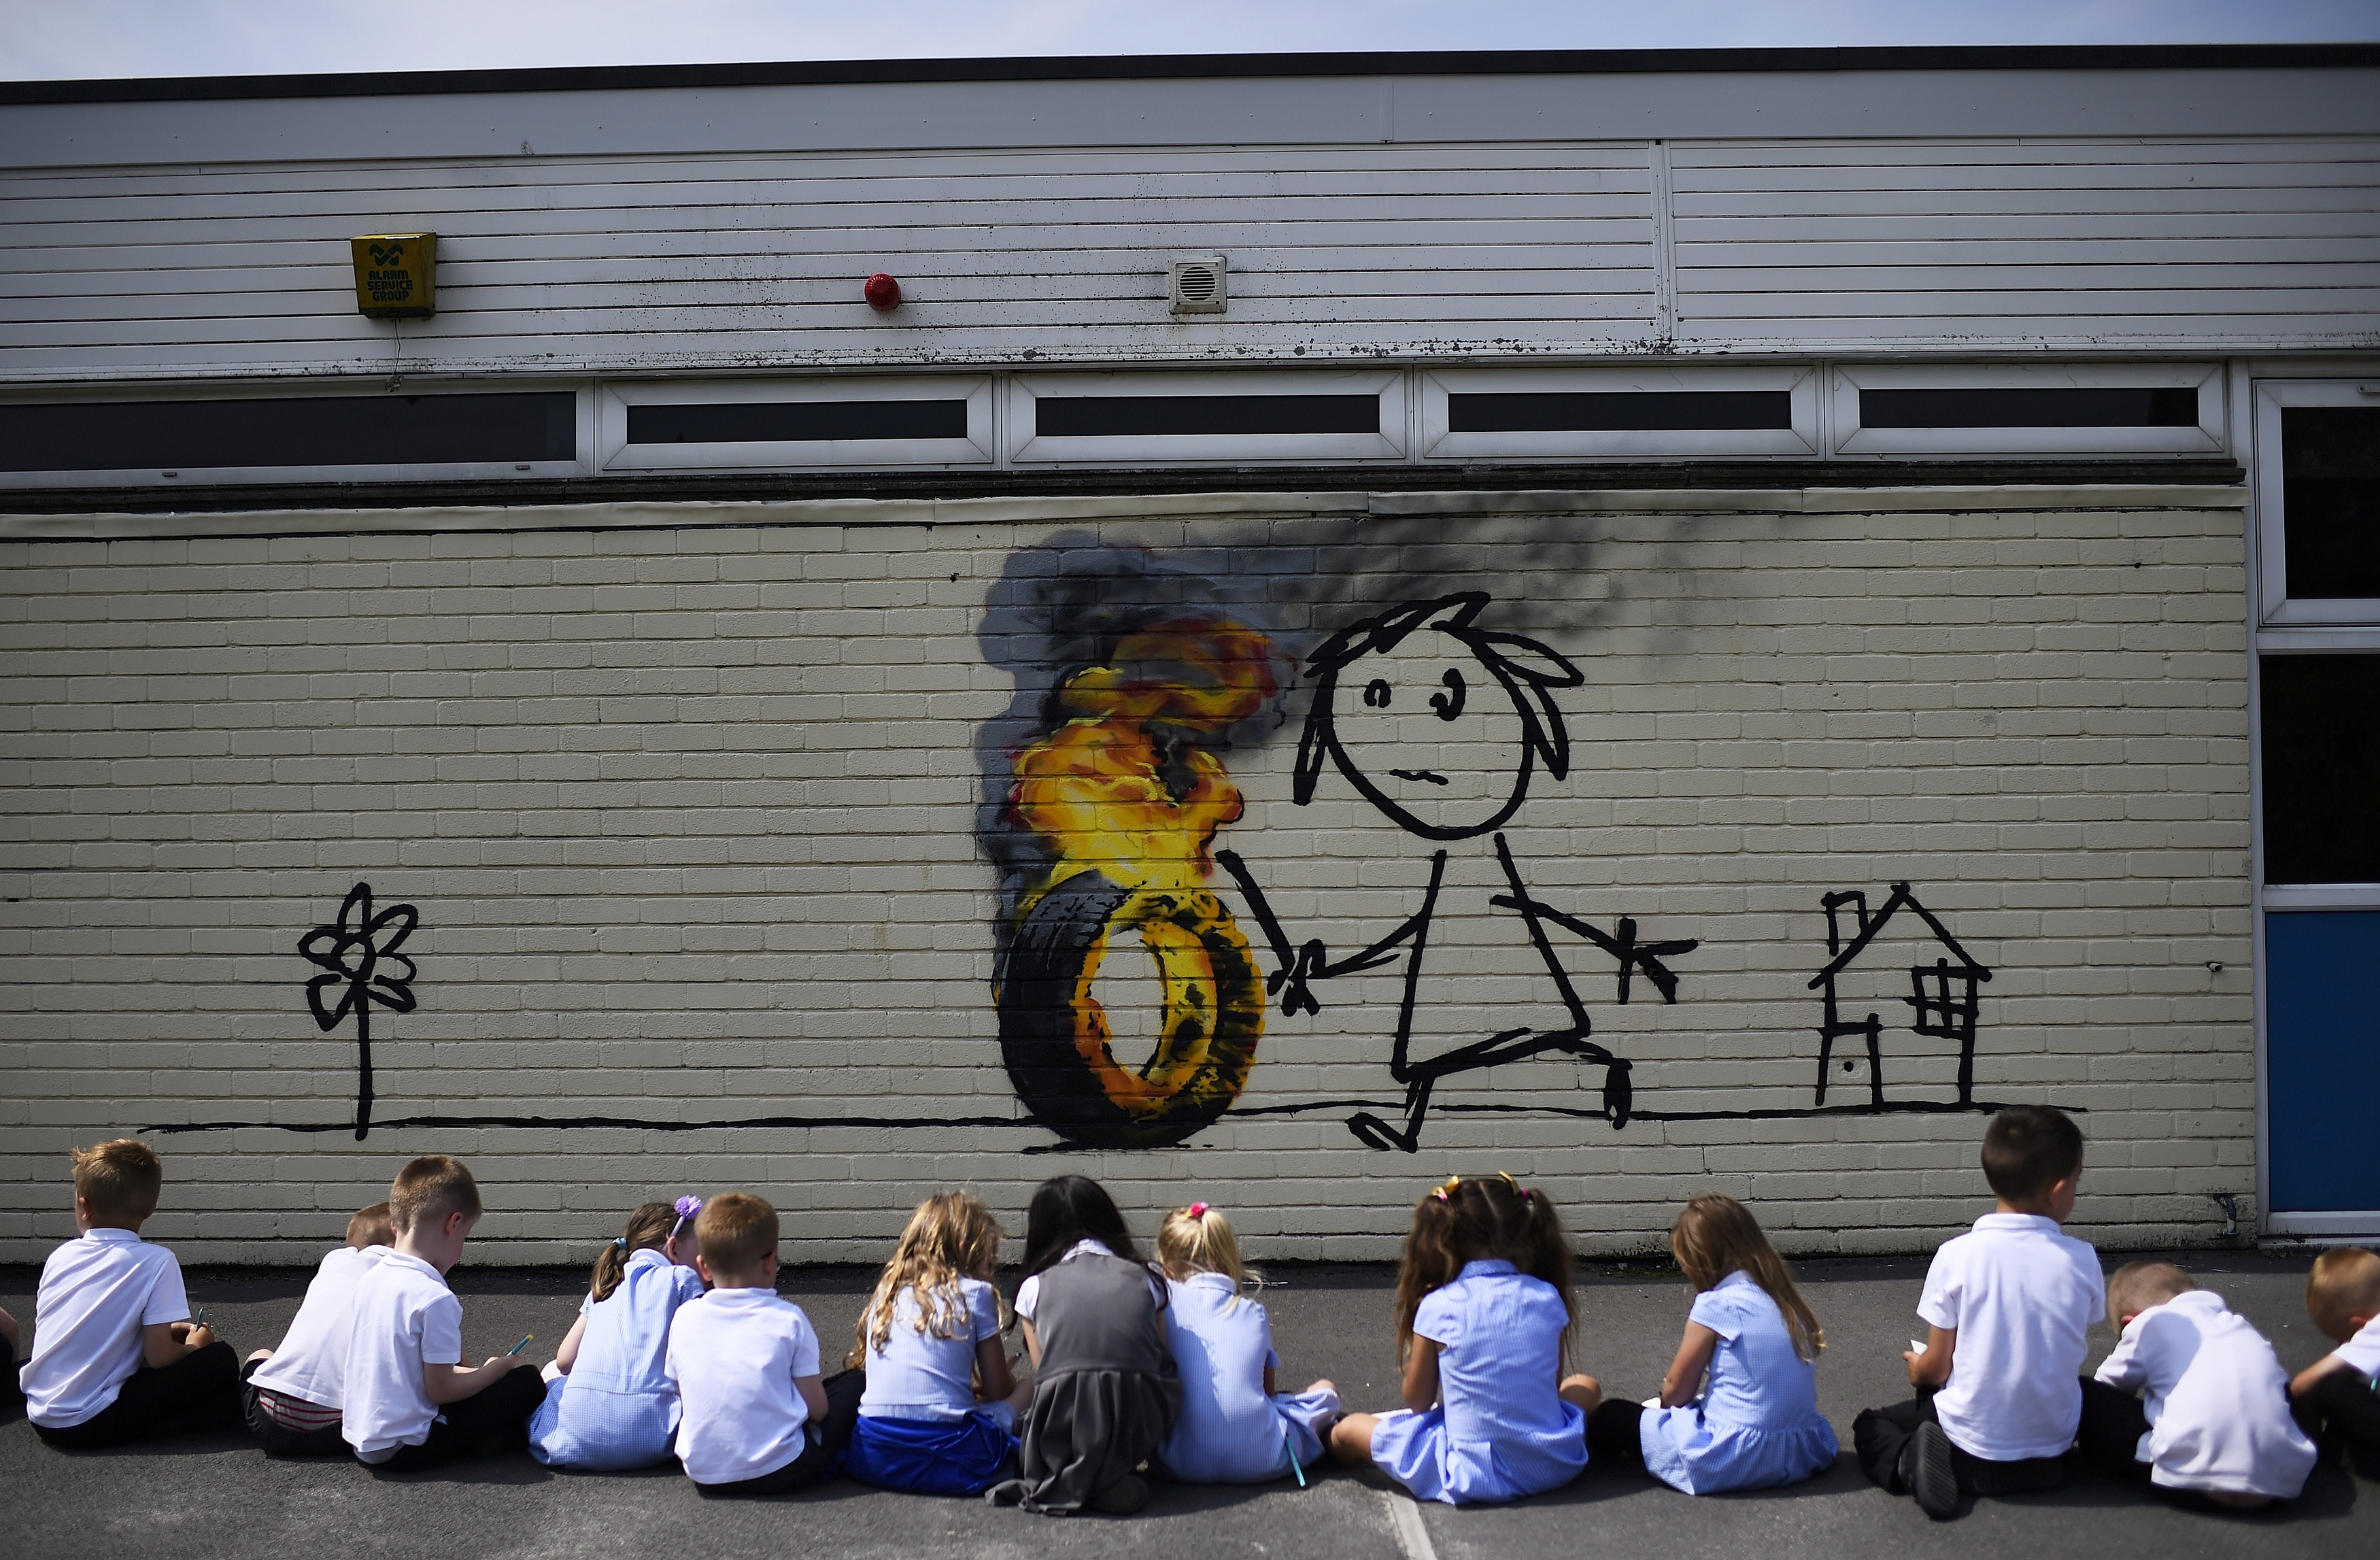 Reception class school children sit in a row as they draw a mural, attributed to graffiti artist Banksy, painted on the outside of a class room at the Bridge Farm Primary School in Bristol, Britain June 6, 2016.